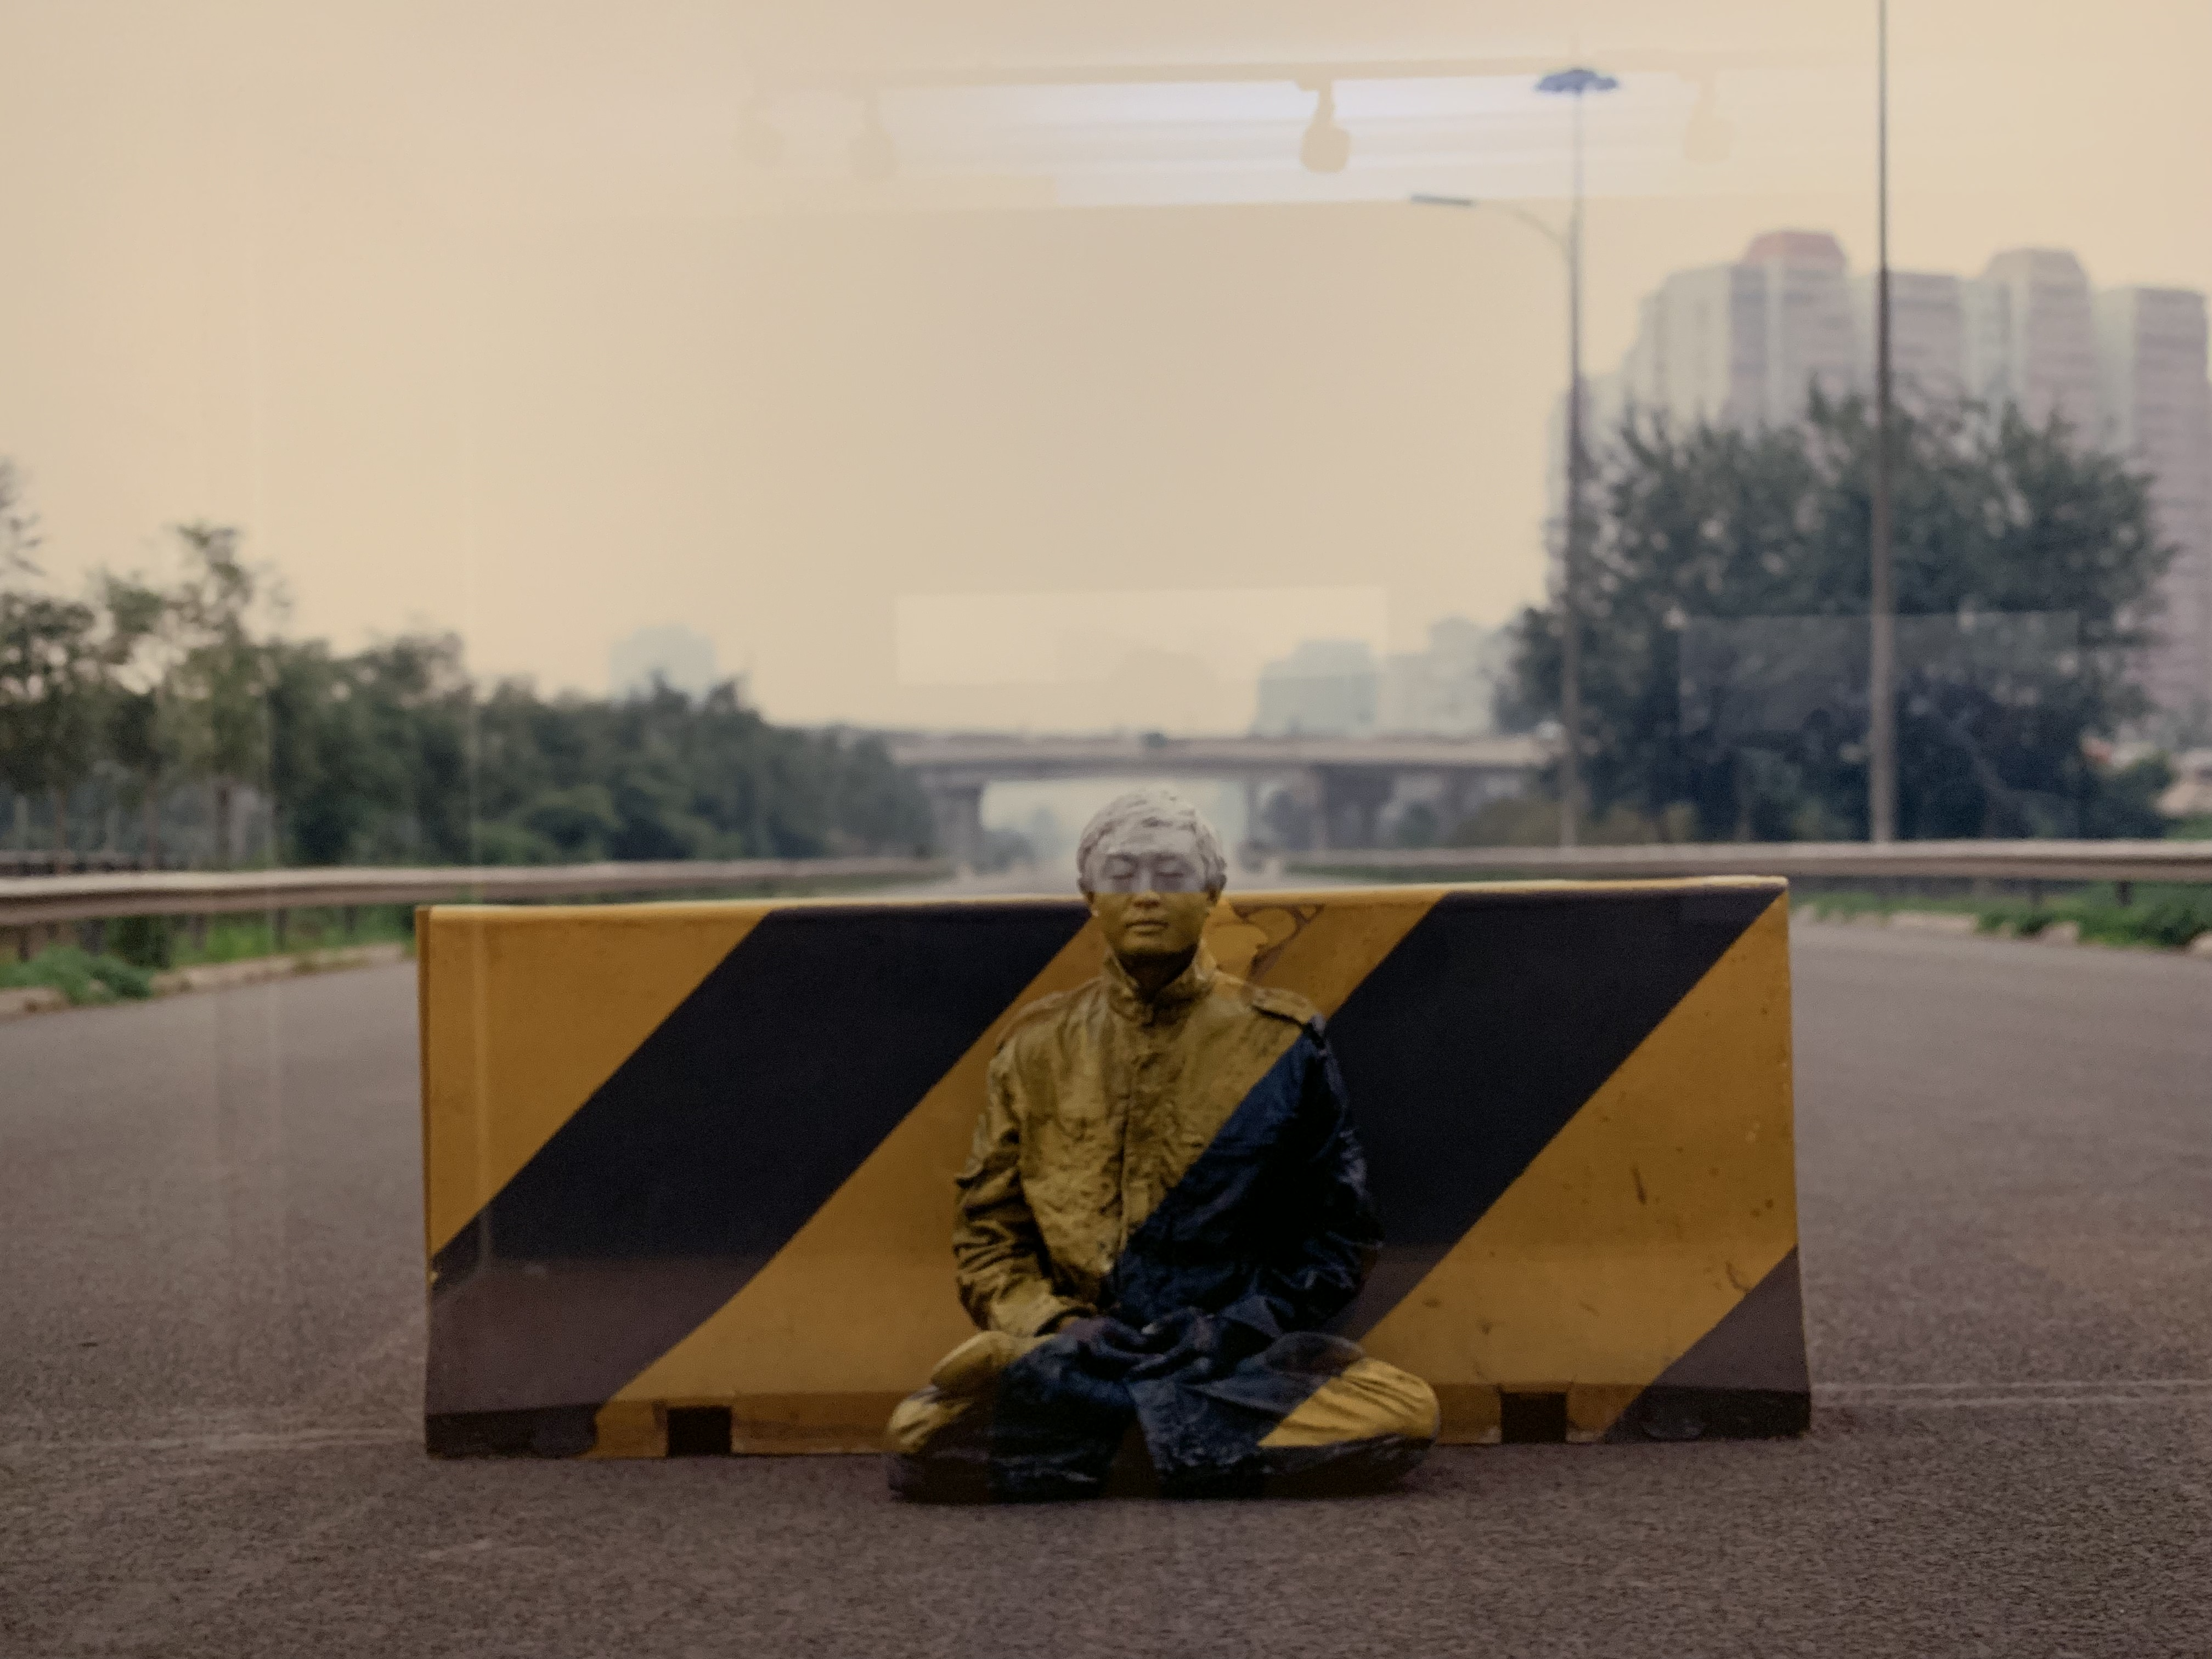 Liu Bolin painted into a road block